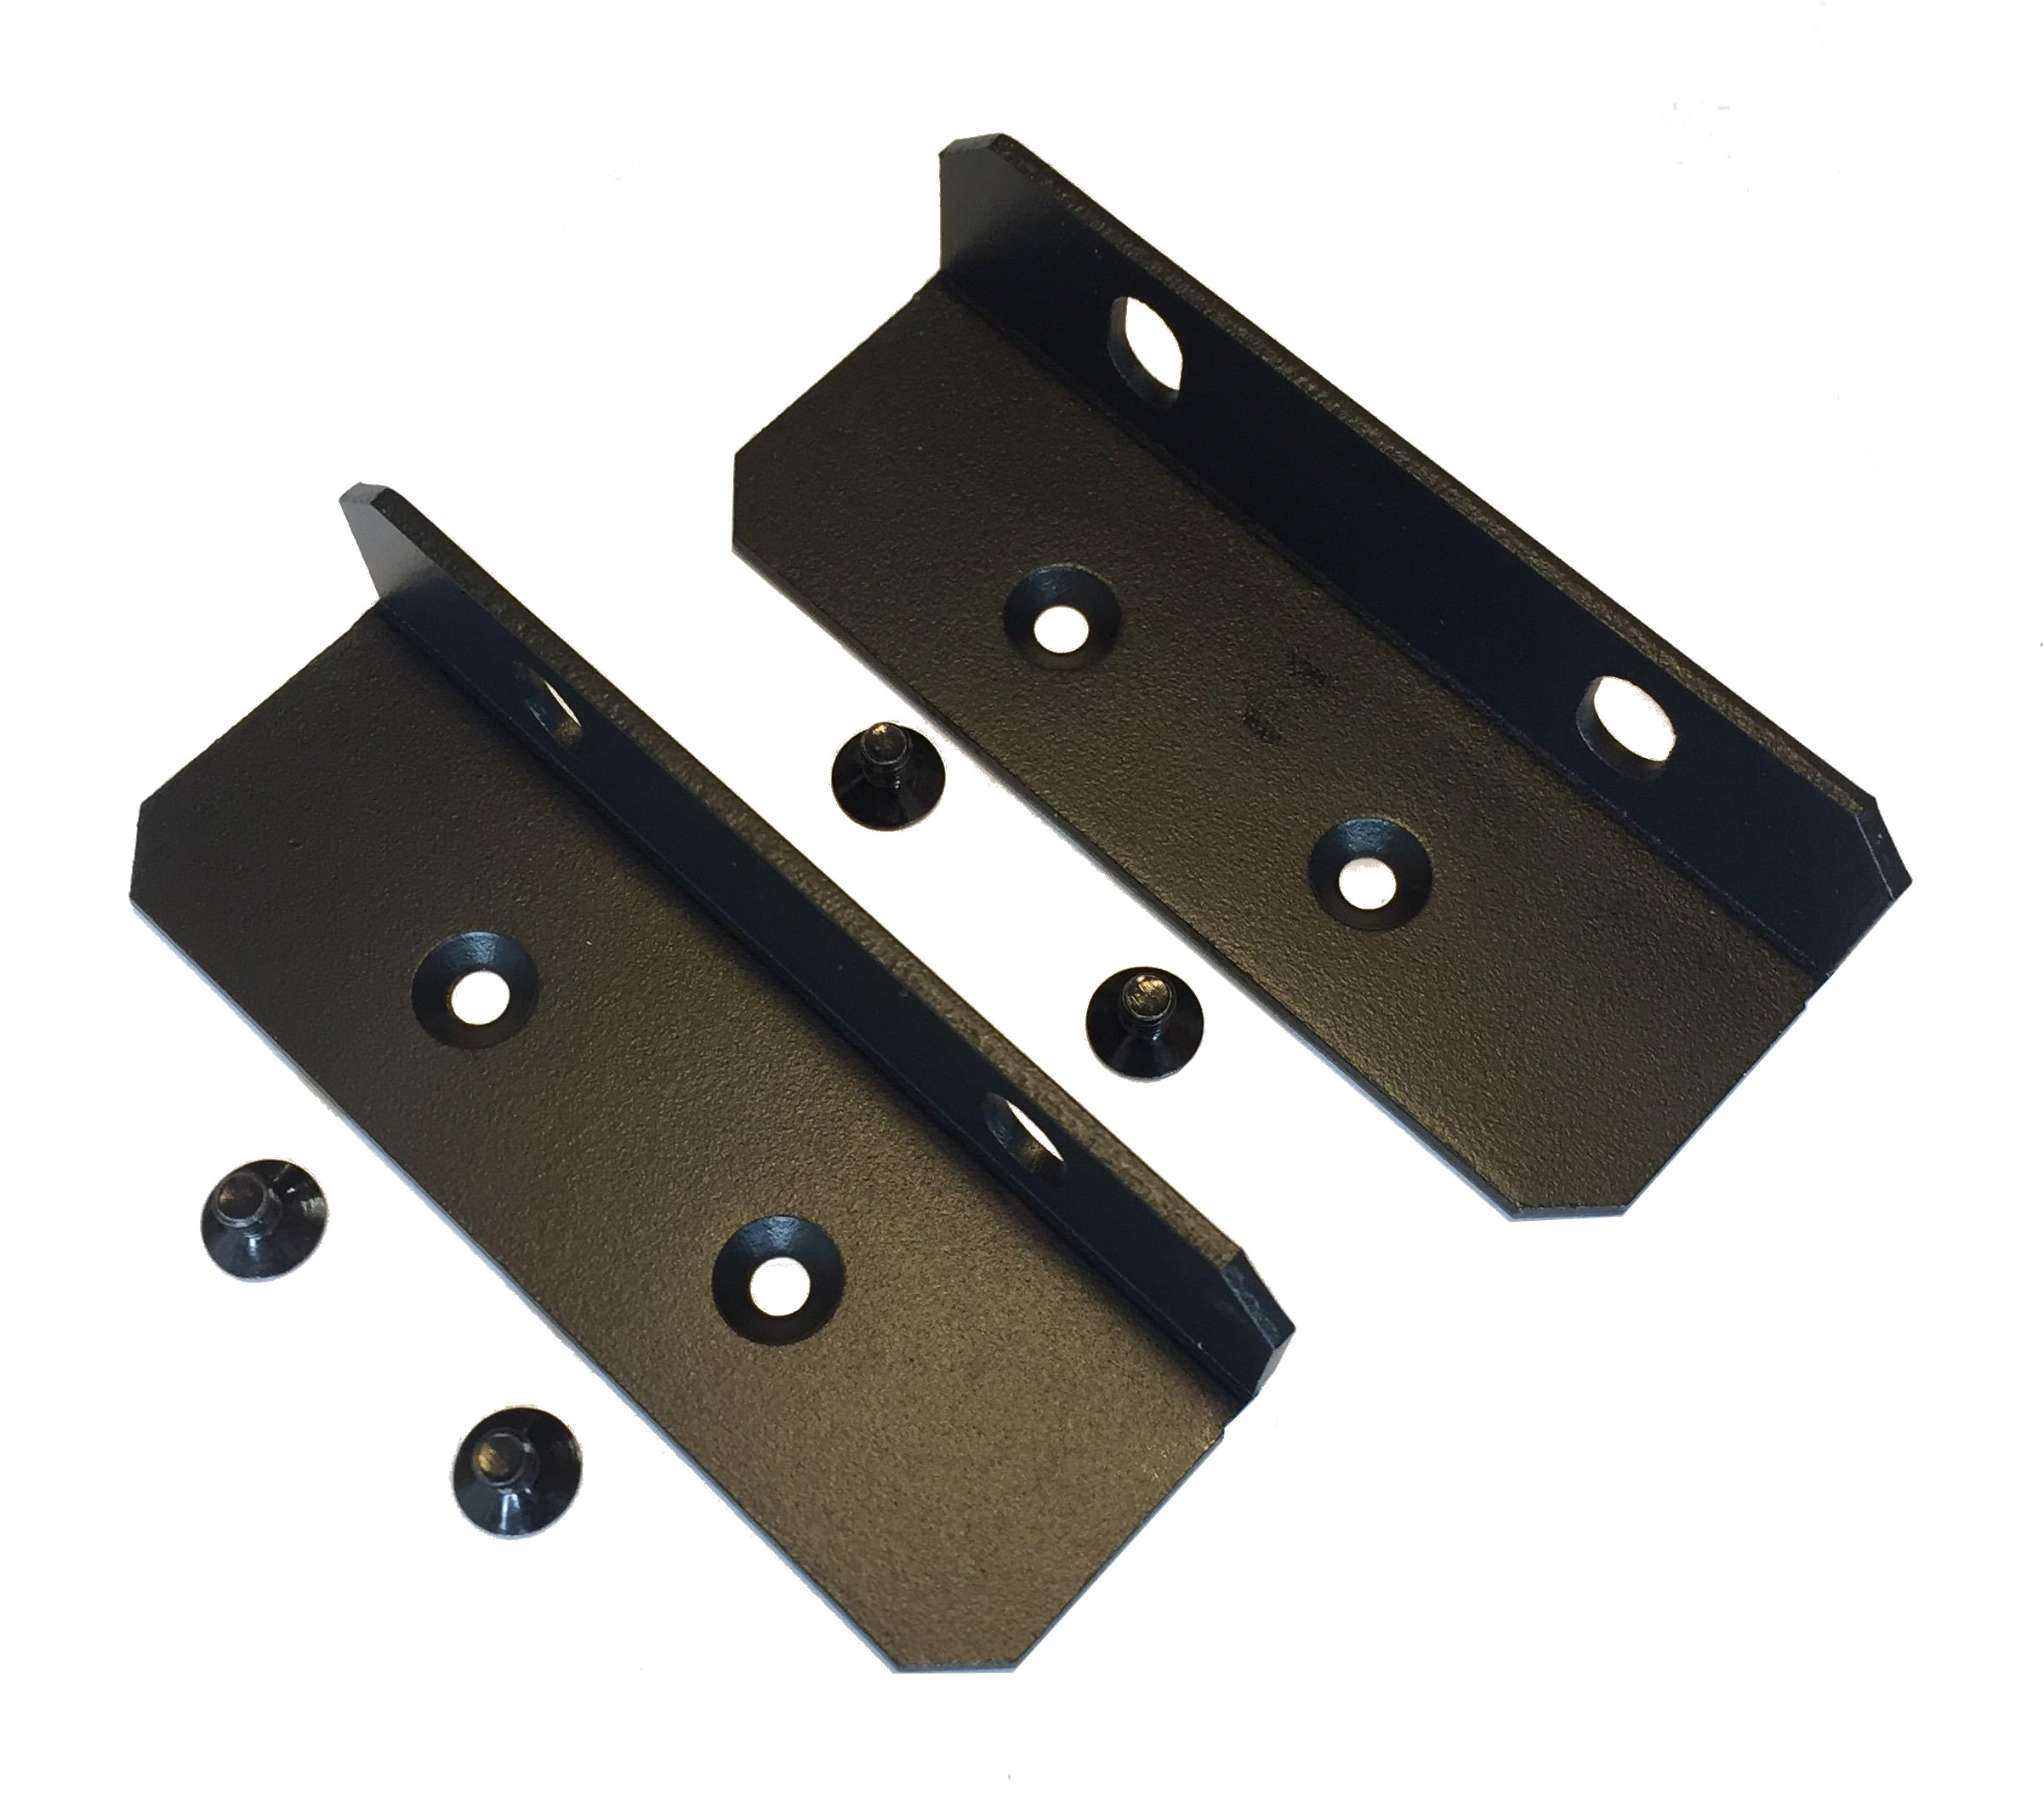 Rack Mount Ears (2U) for Admiral 16 Pro, Admiral 32 Pro, Imperial 32 & Imperial 64